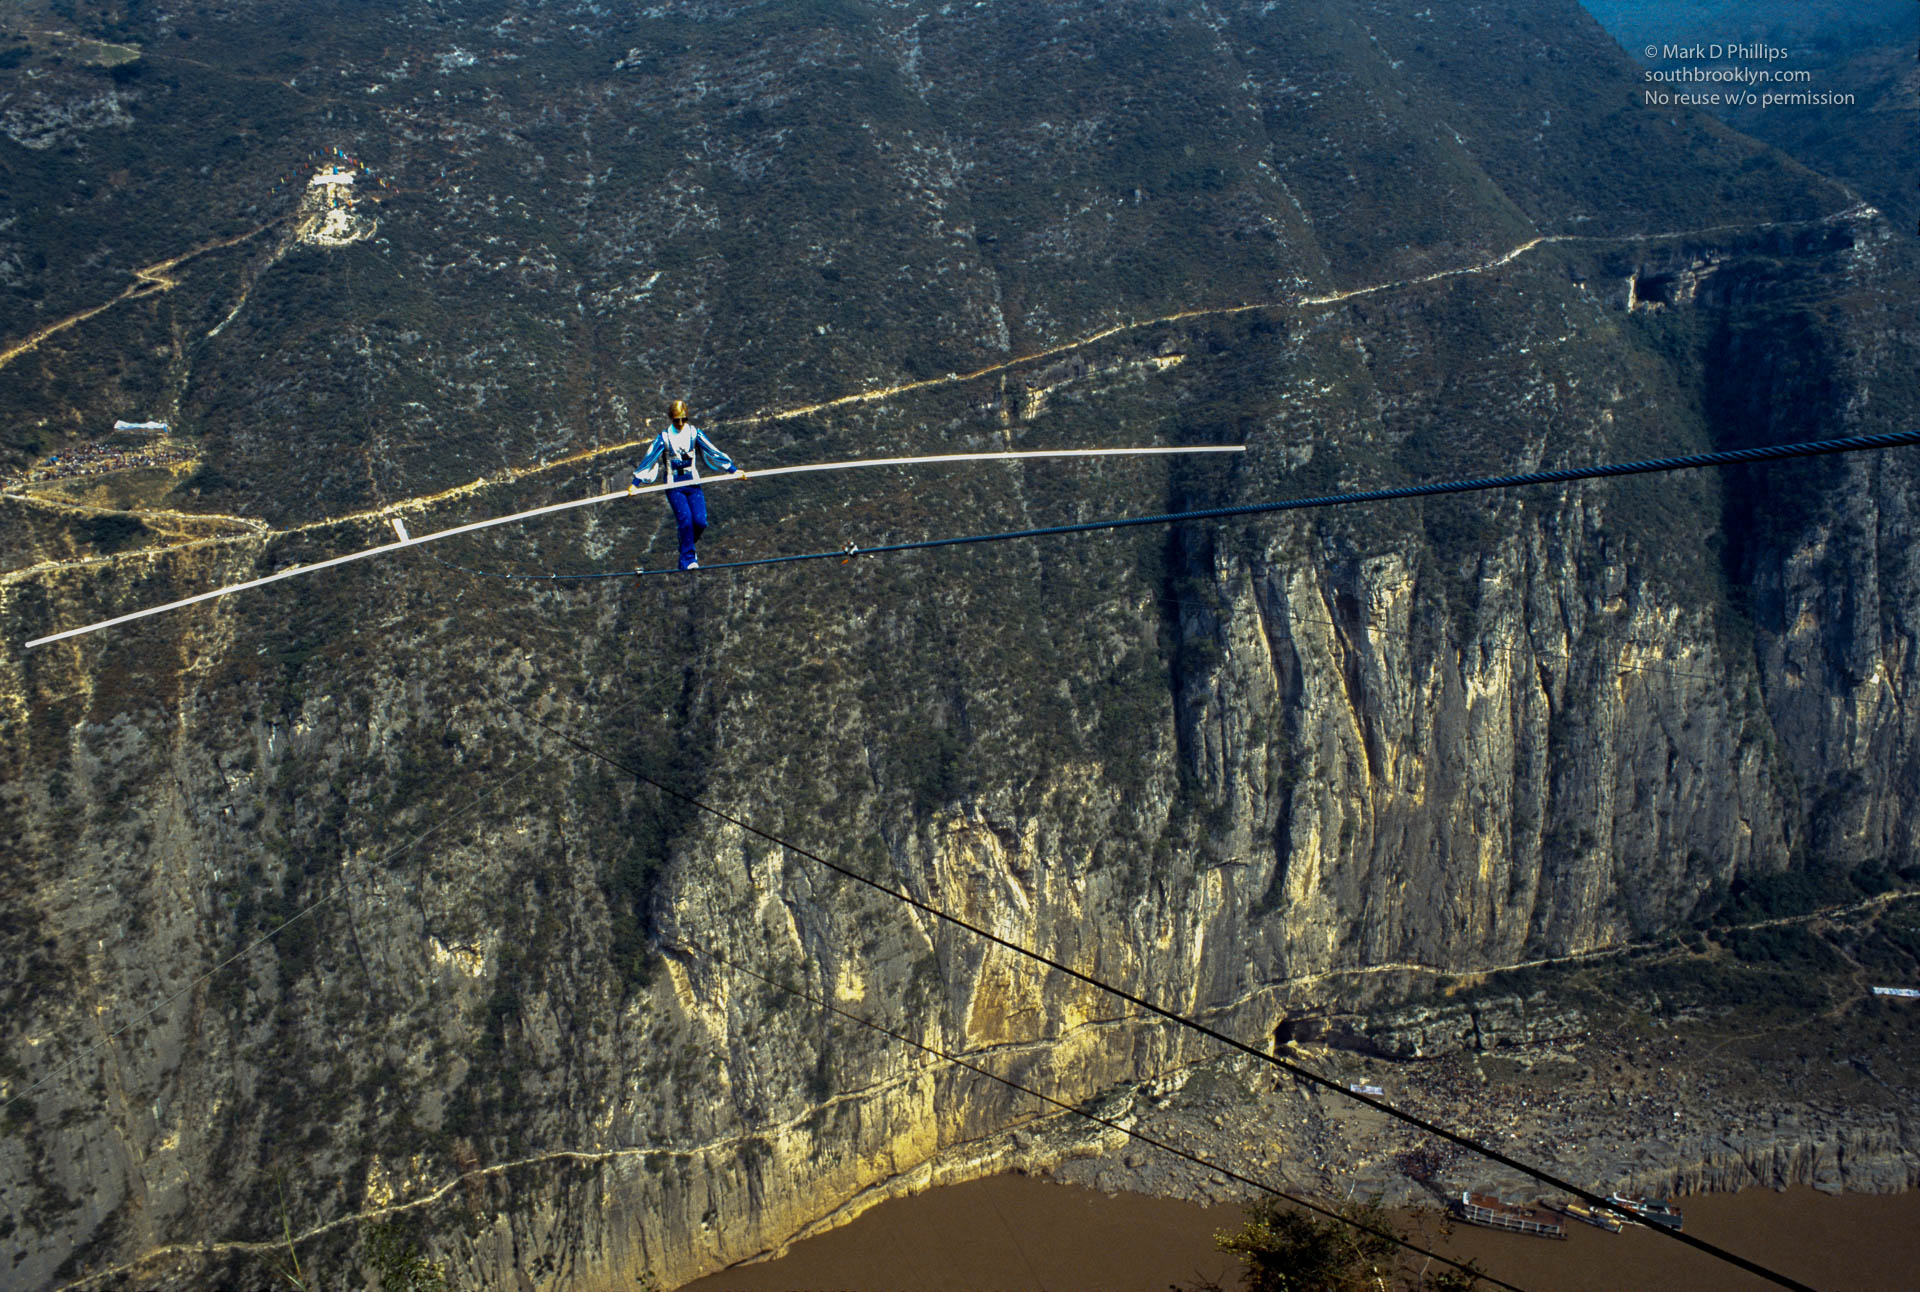 Jay Cochrane skywalks across middle of wire above Yangtze River in Qutang Gorge, China, during the Great China Skywalk on October 28, 1995. ©Mark D Phillips